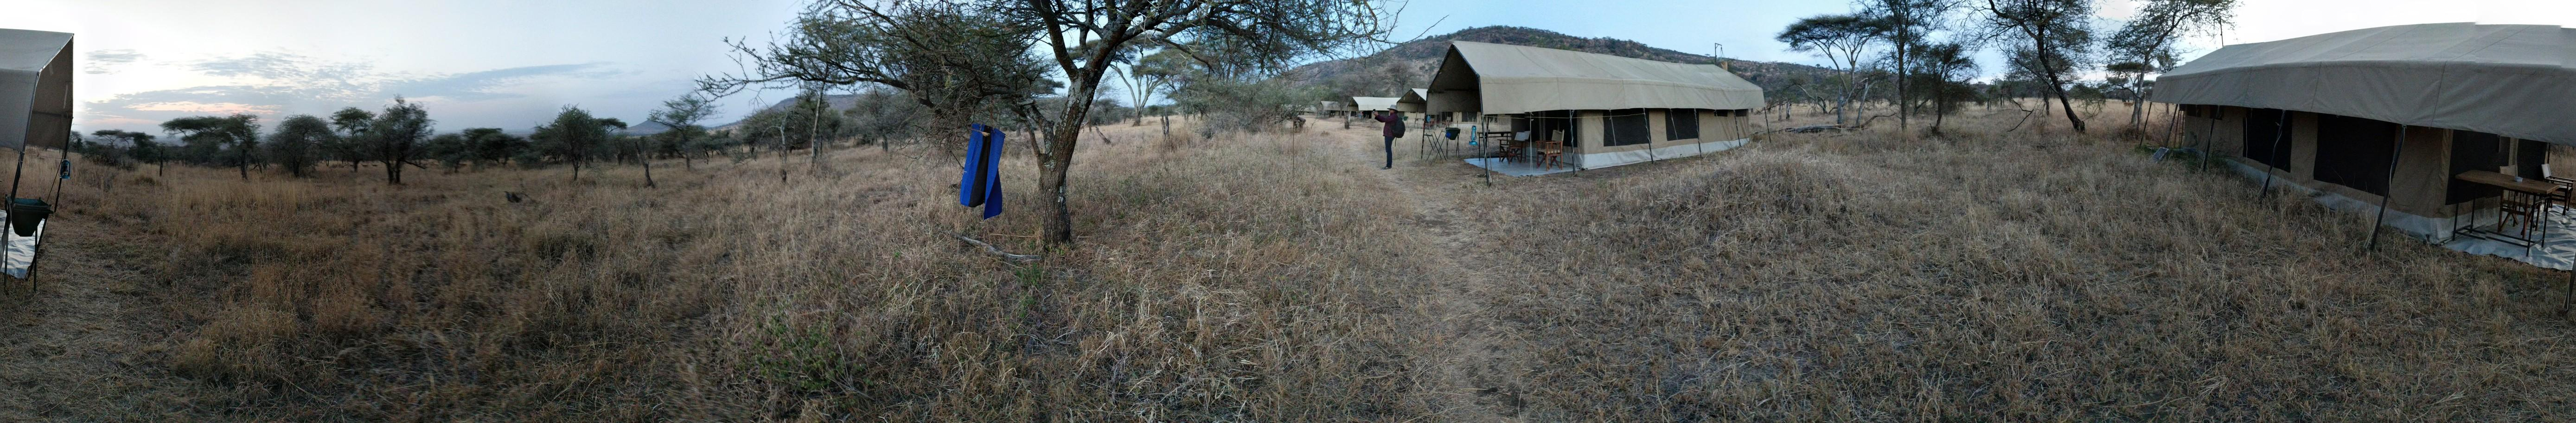 Kati Kati Tented Camp - Panaromic View